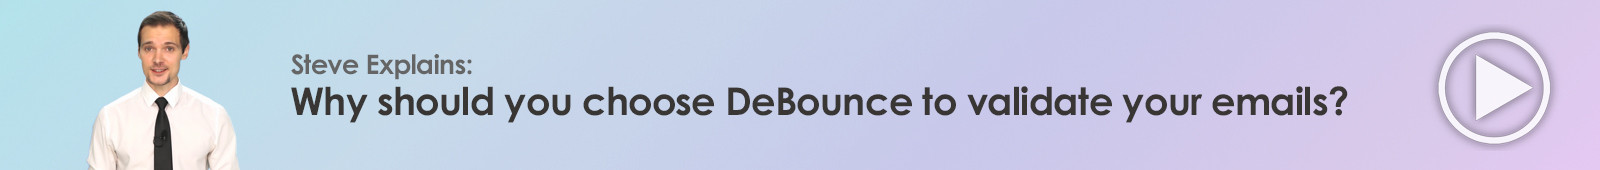 Why should you choose DeBounce to validate your emails?